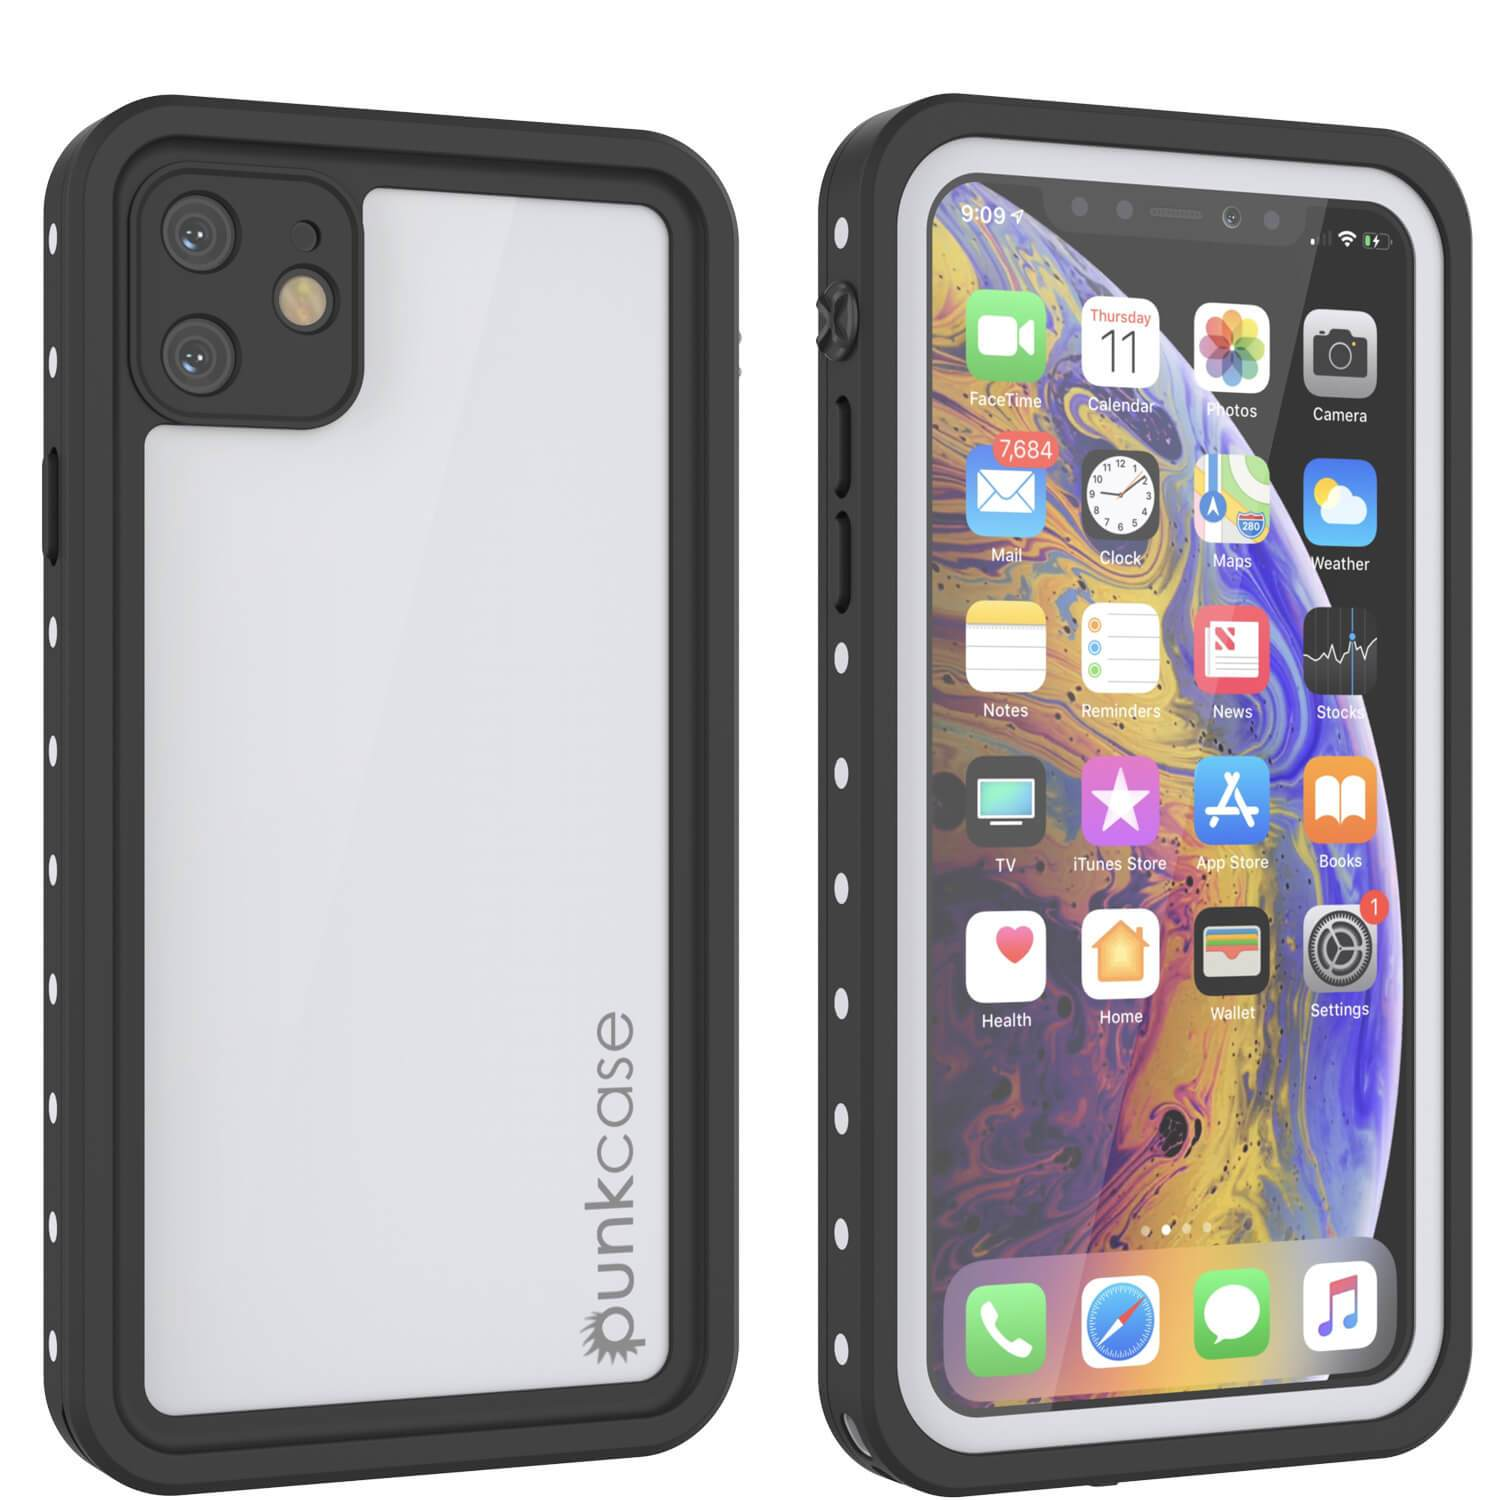 iPhone 11 Waterproof IP68 Case, Punkcase [White] [StudStar Series] [Slim Fit] [Dirtproof]